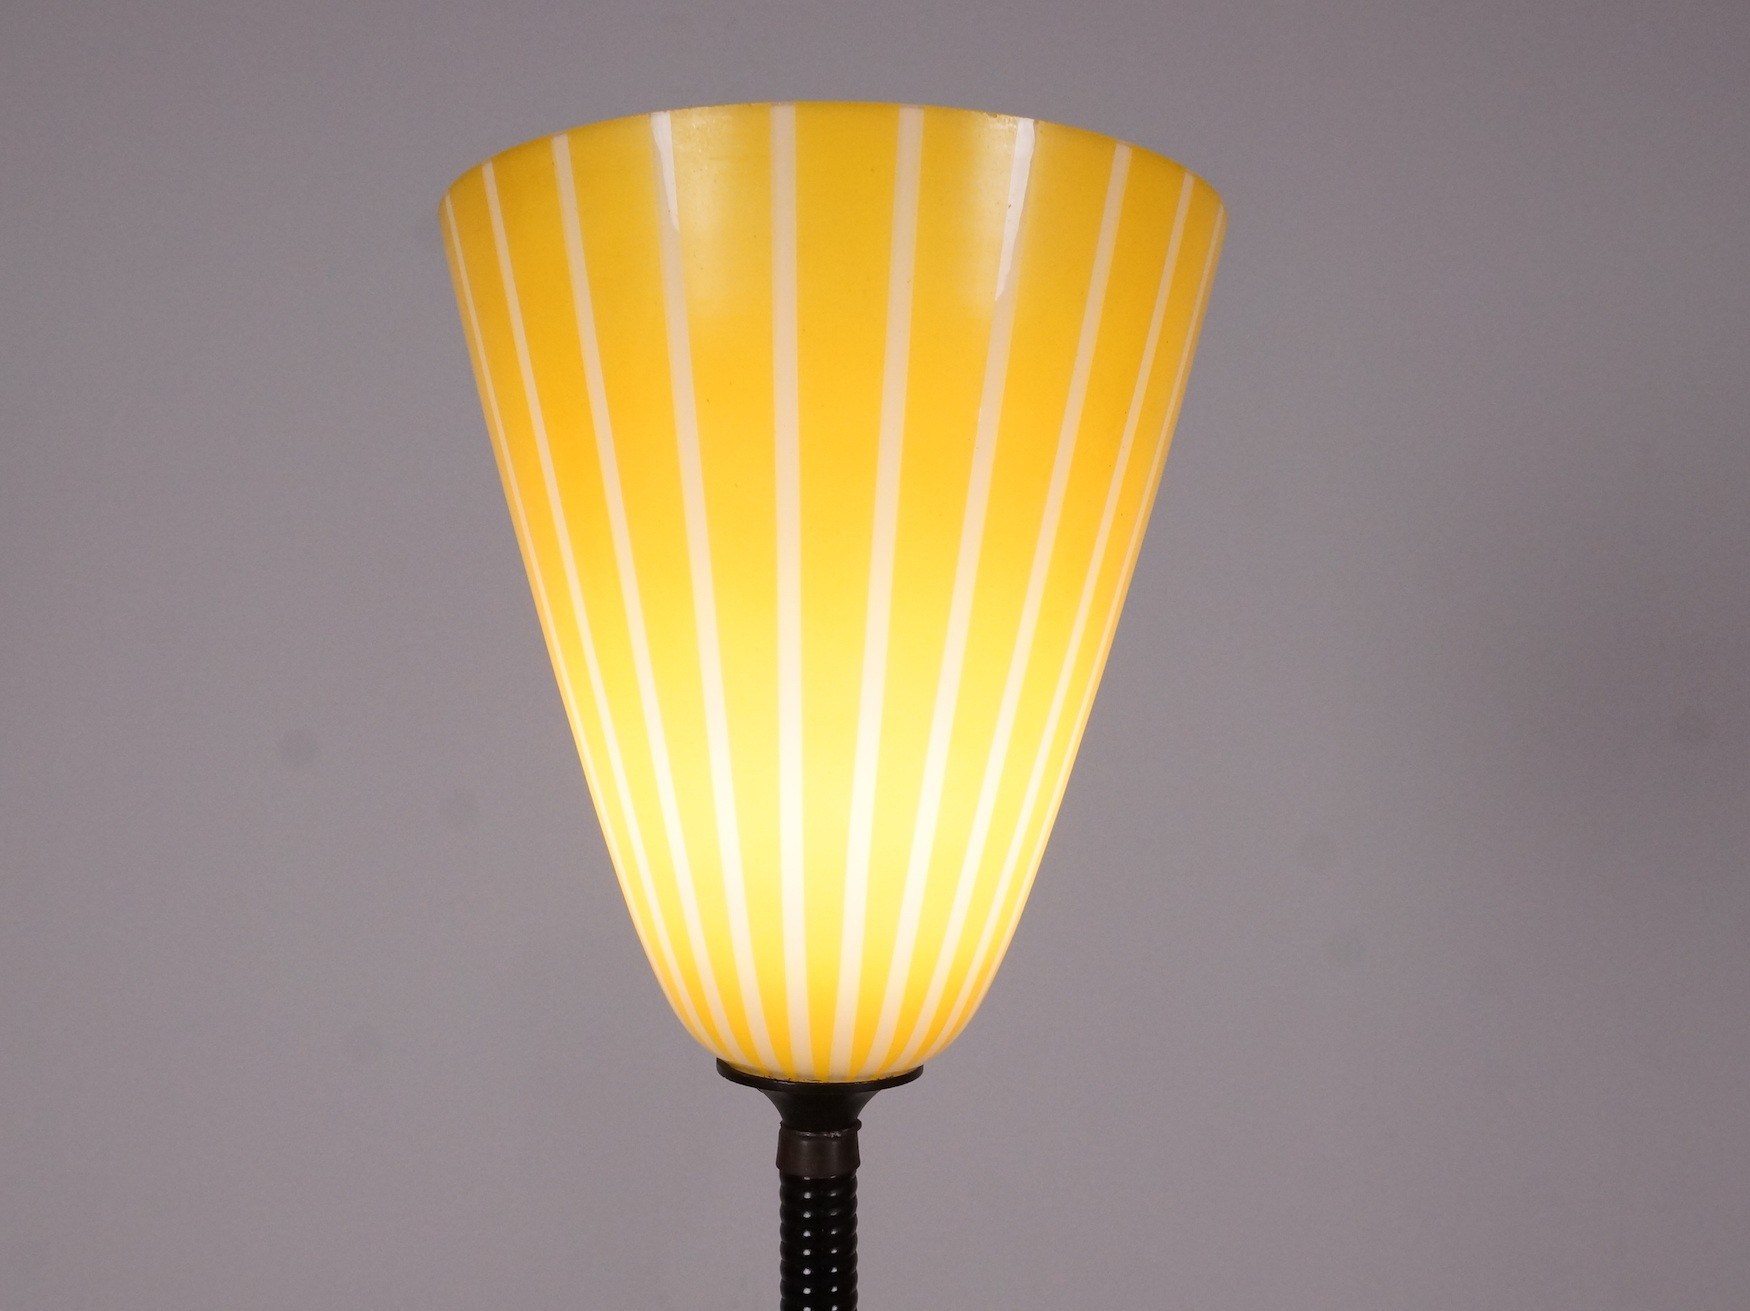 shade lamp lamps shades ceiling interior dauphine light large media flooramps glass bedroom purple hobby target yellow only australia white replacement floor lampshades uno lobbylamp bookcases armoires small storage table chairs hobbyobbylamp extra for bedside ikea uk online ideaslamp